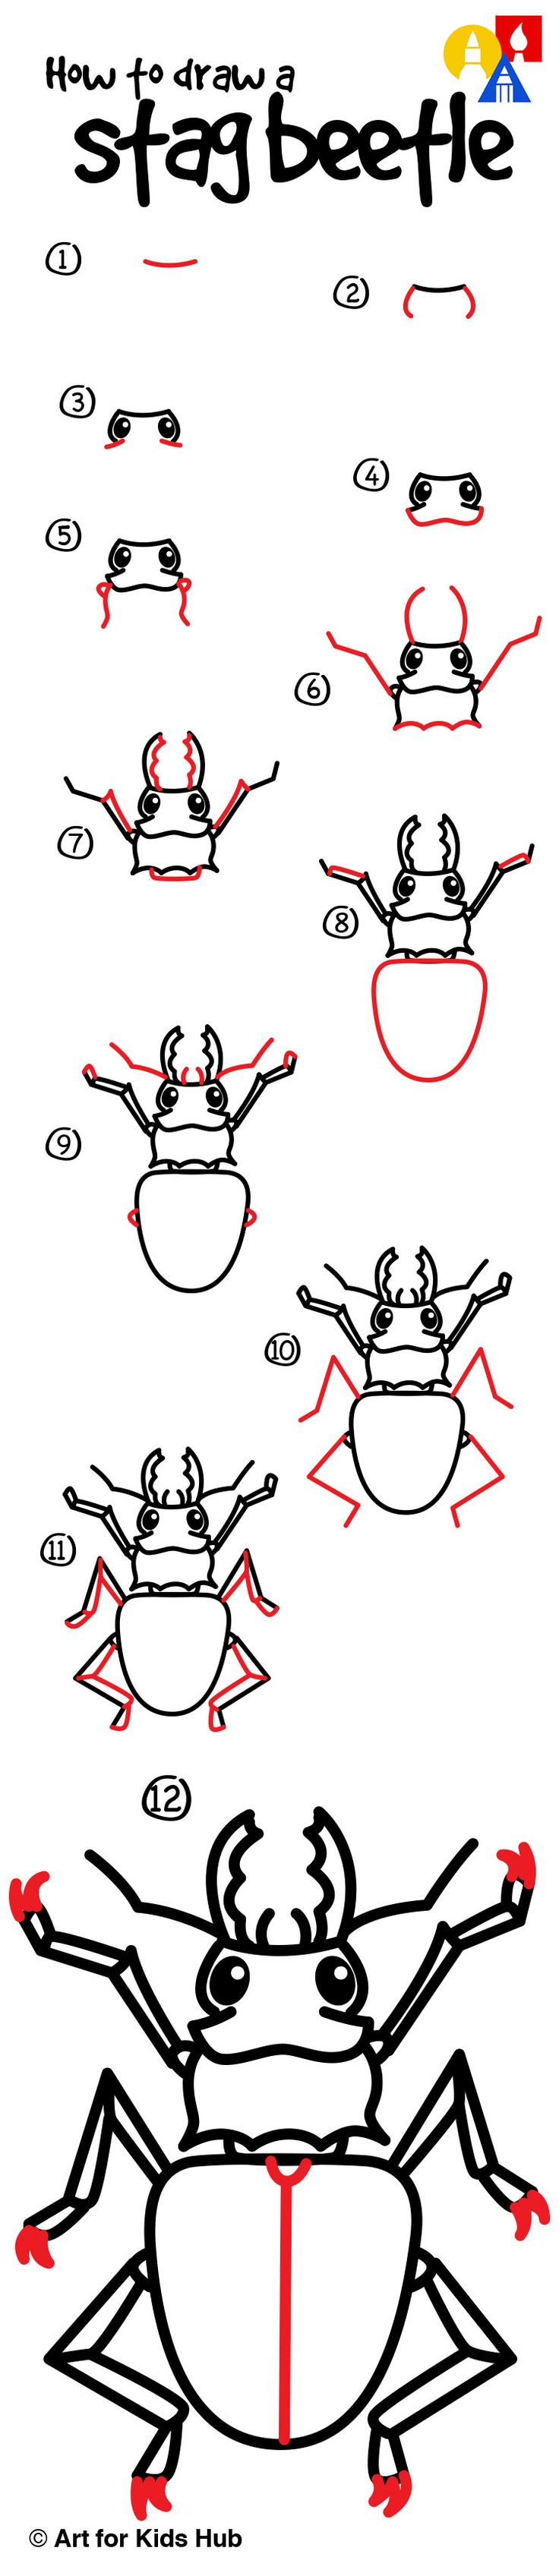 How To Draw A Stag Beetle  Art For Kids Hub